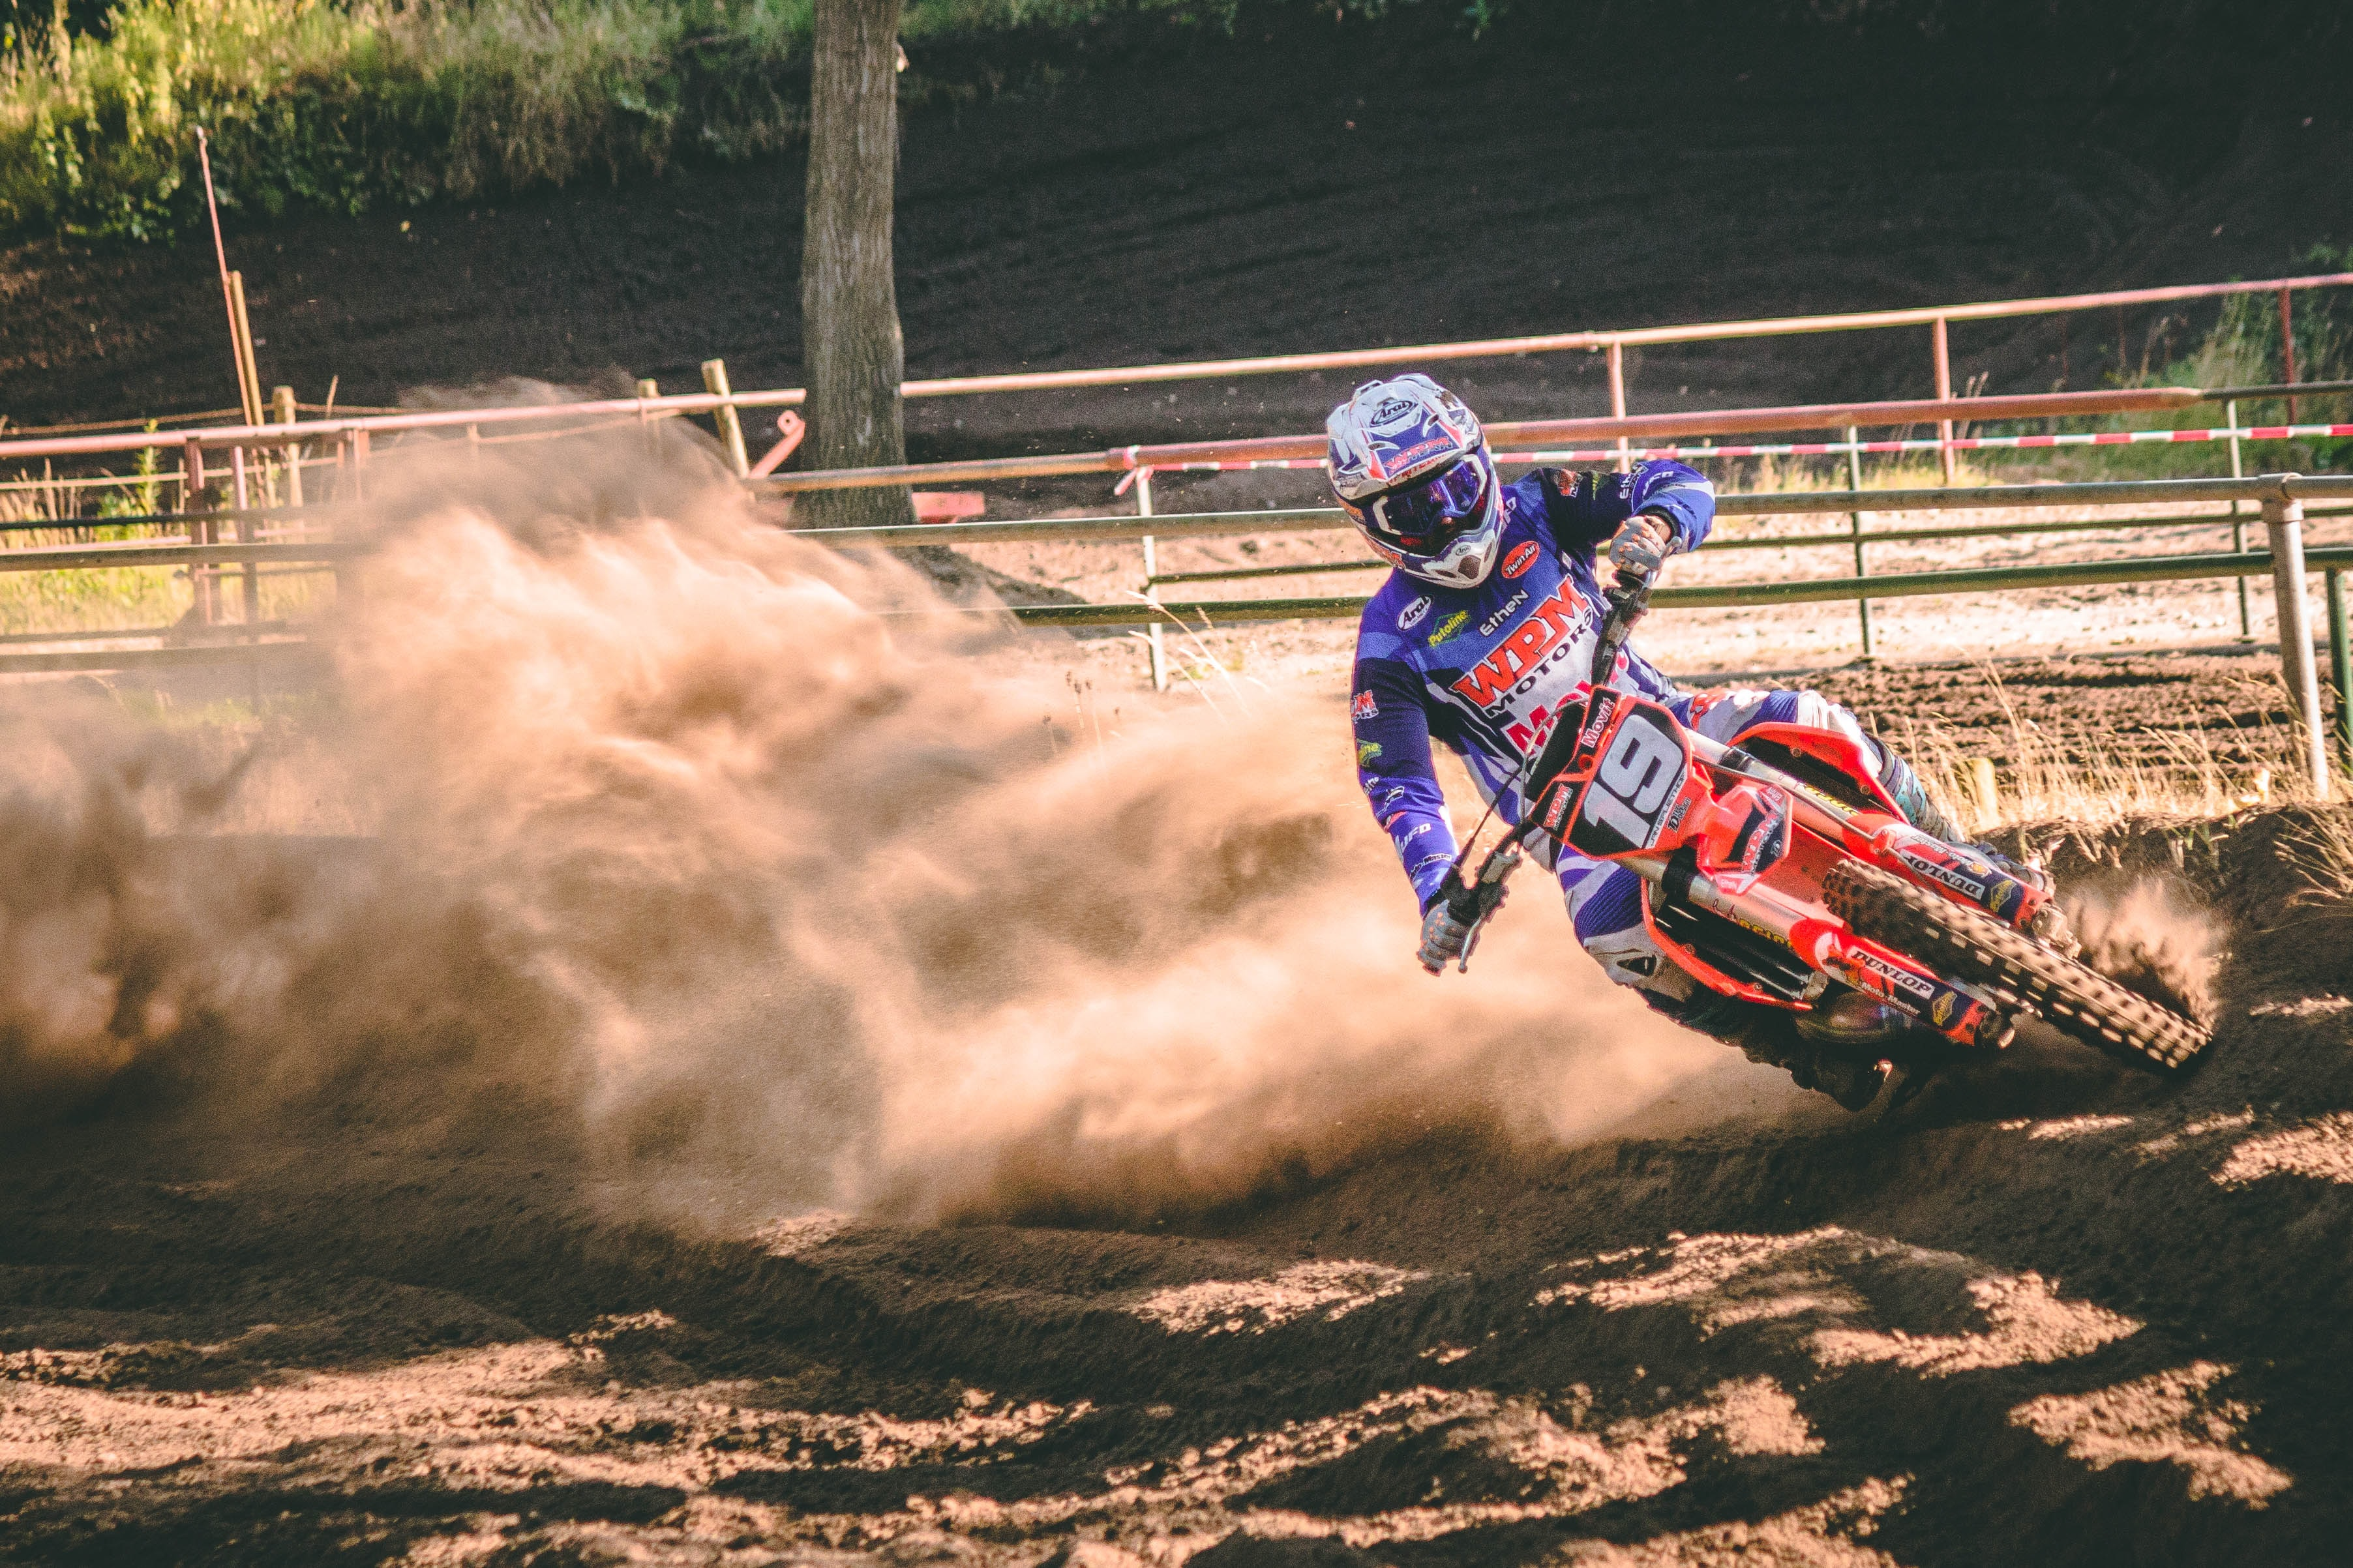 person riding on motocross dirt bike drifts on race track